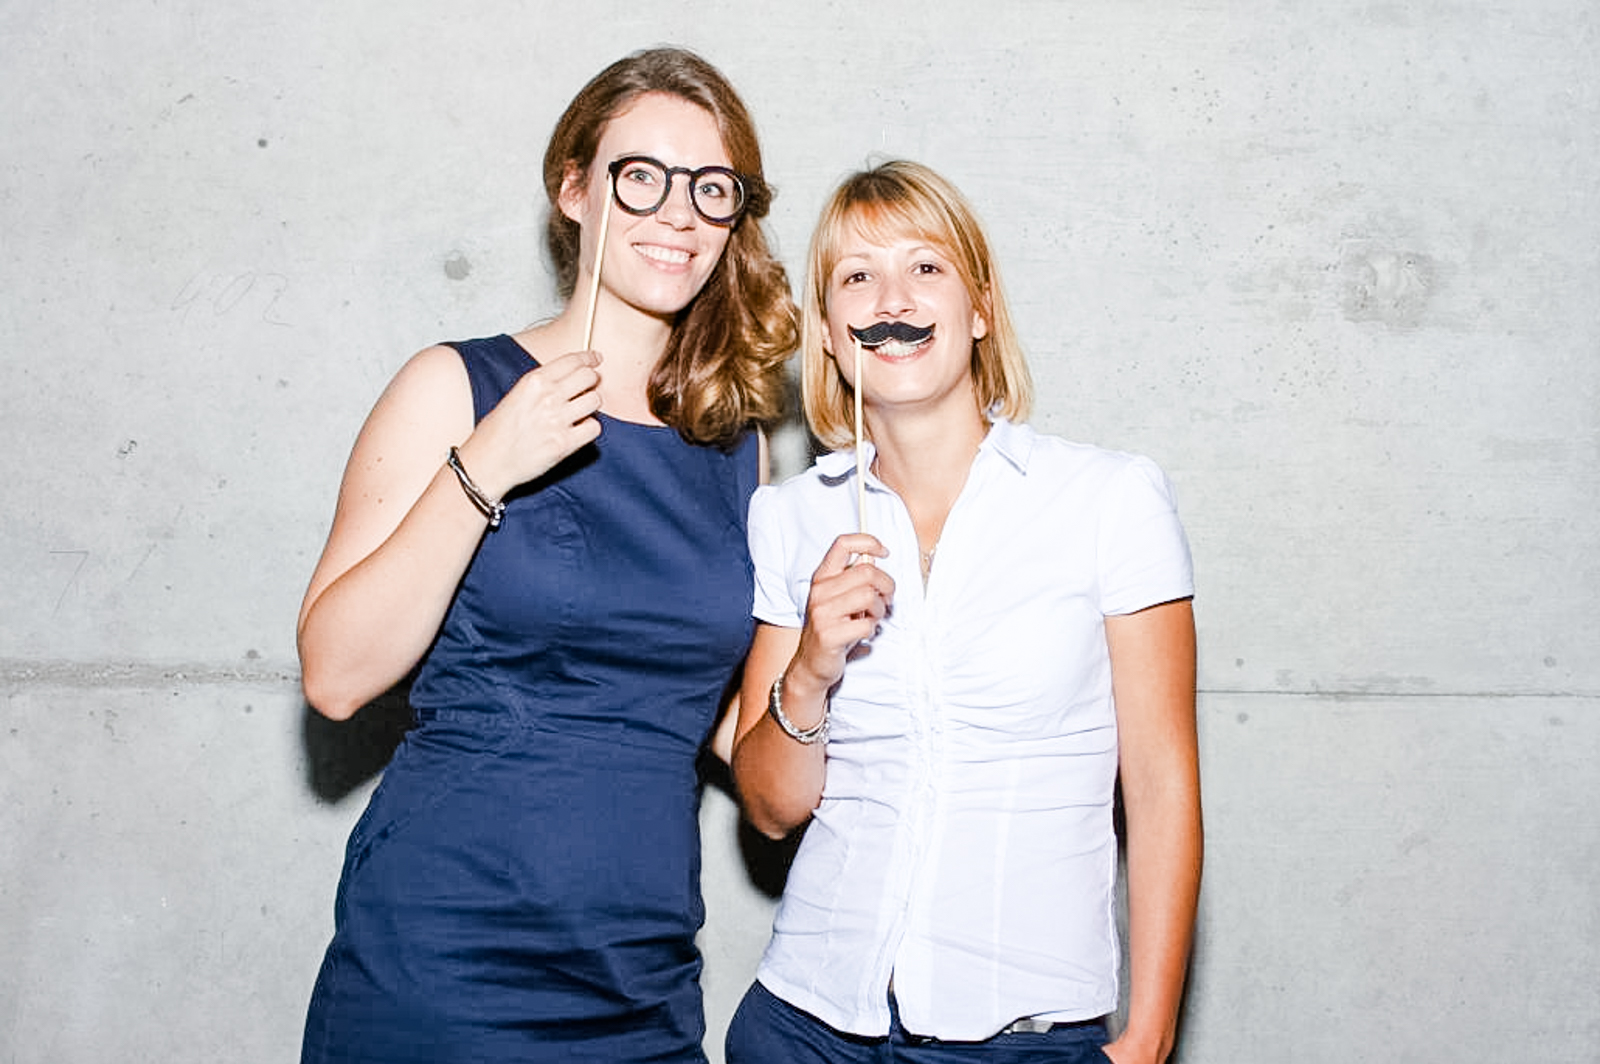 Monstergraphie_Photobooth_Zeche_Zollverein-17.jpg?fit=1600%2C1064